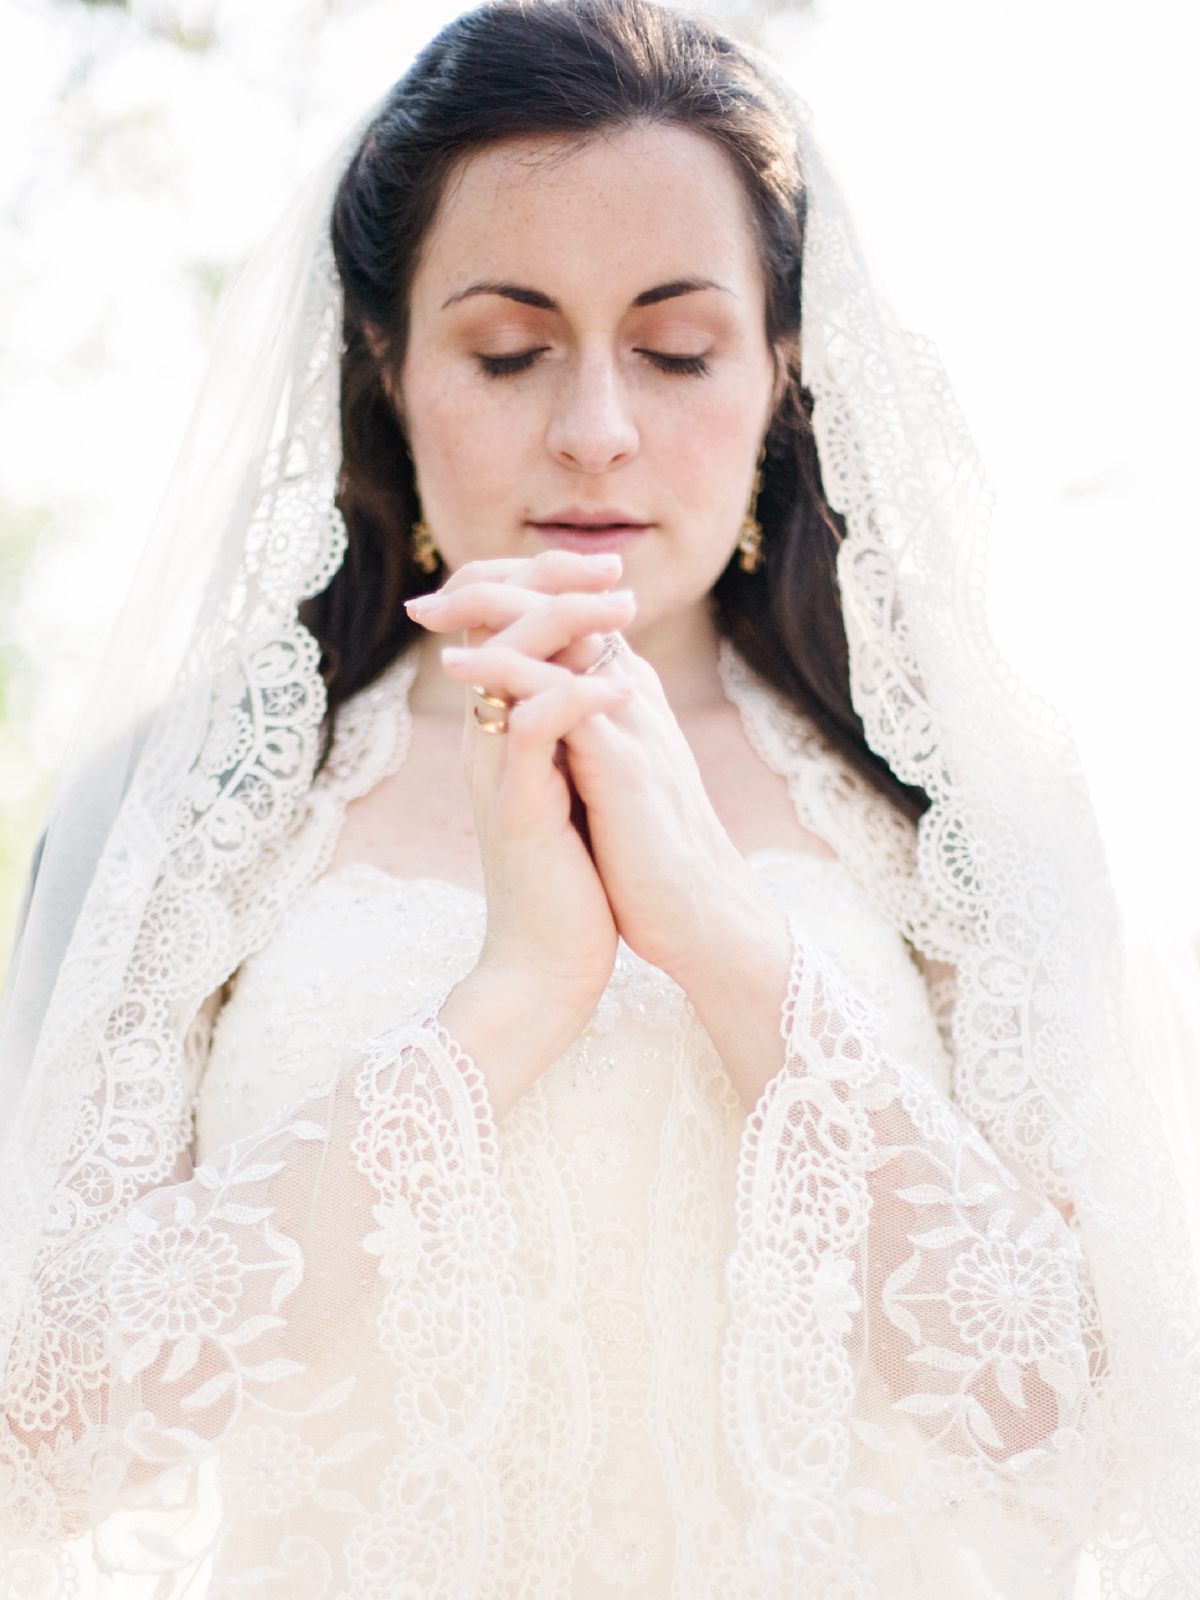 Wedding Mantilla | West Palm Beach Wedding Photographer  Shannon Griffin_0036-2.jpg